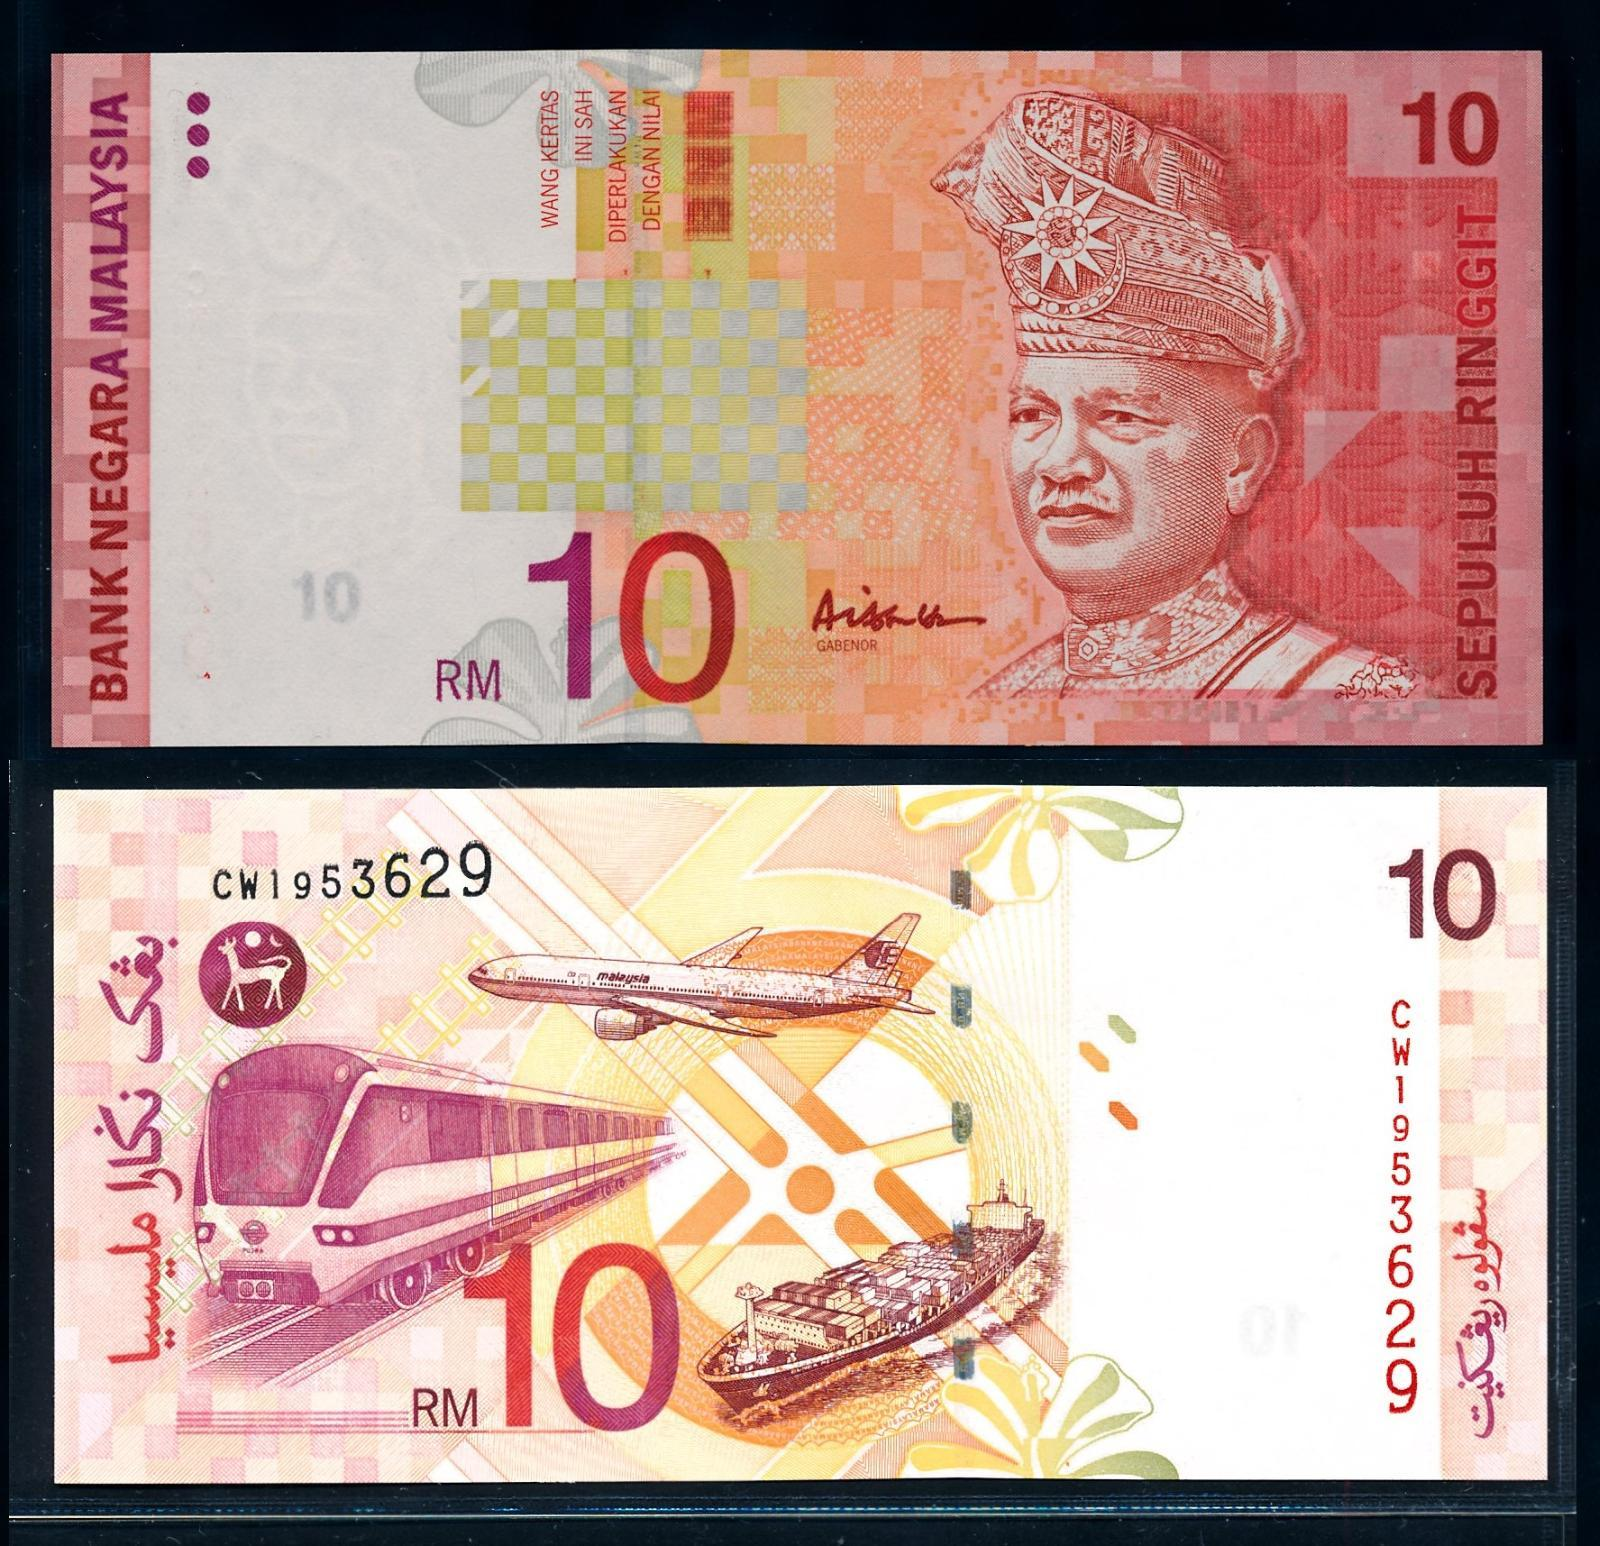 MALAYSIA 100 RINGGIT ND 1992 P 44 a PREFIX AA AUNC ABOUT UNC WITH TONES